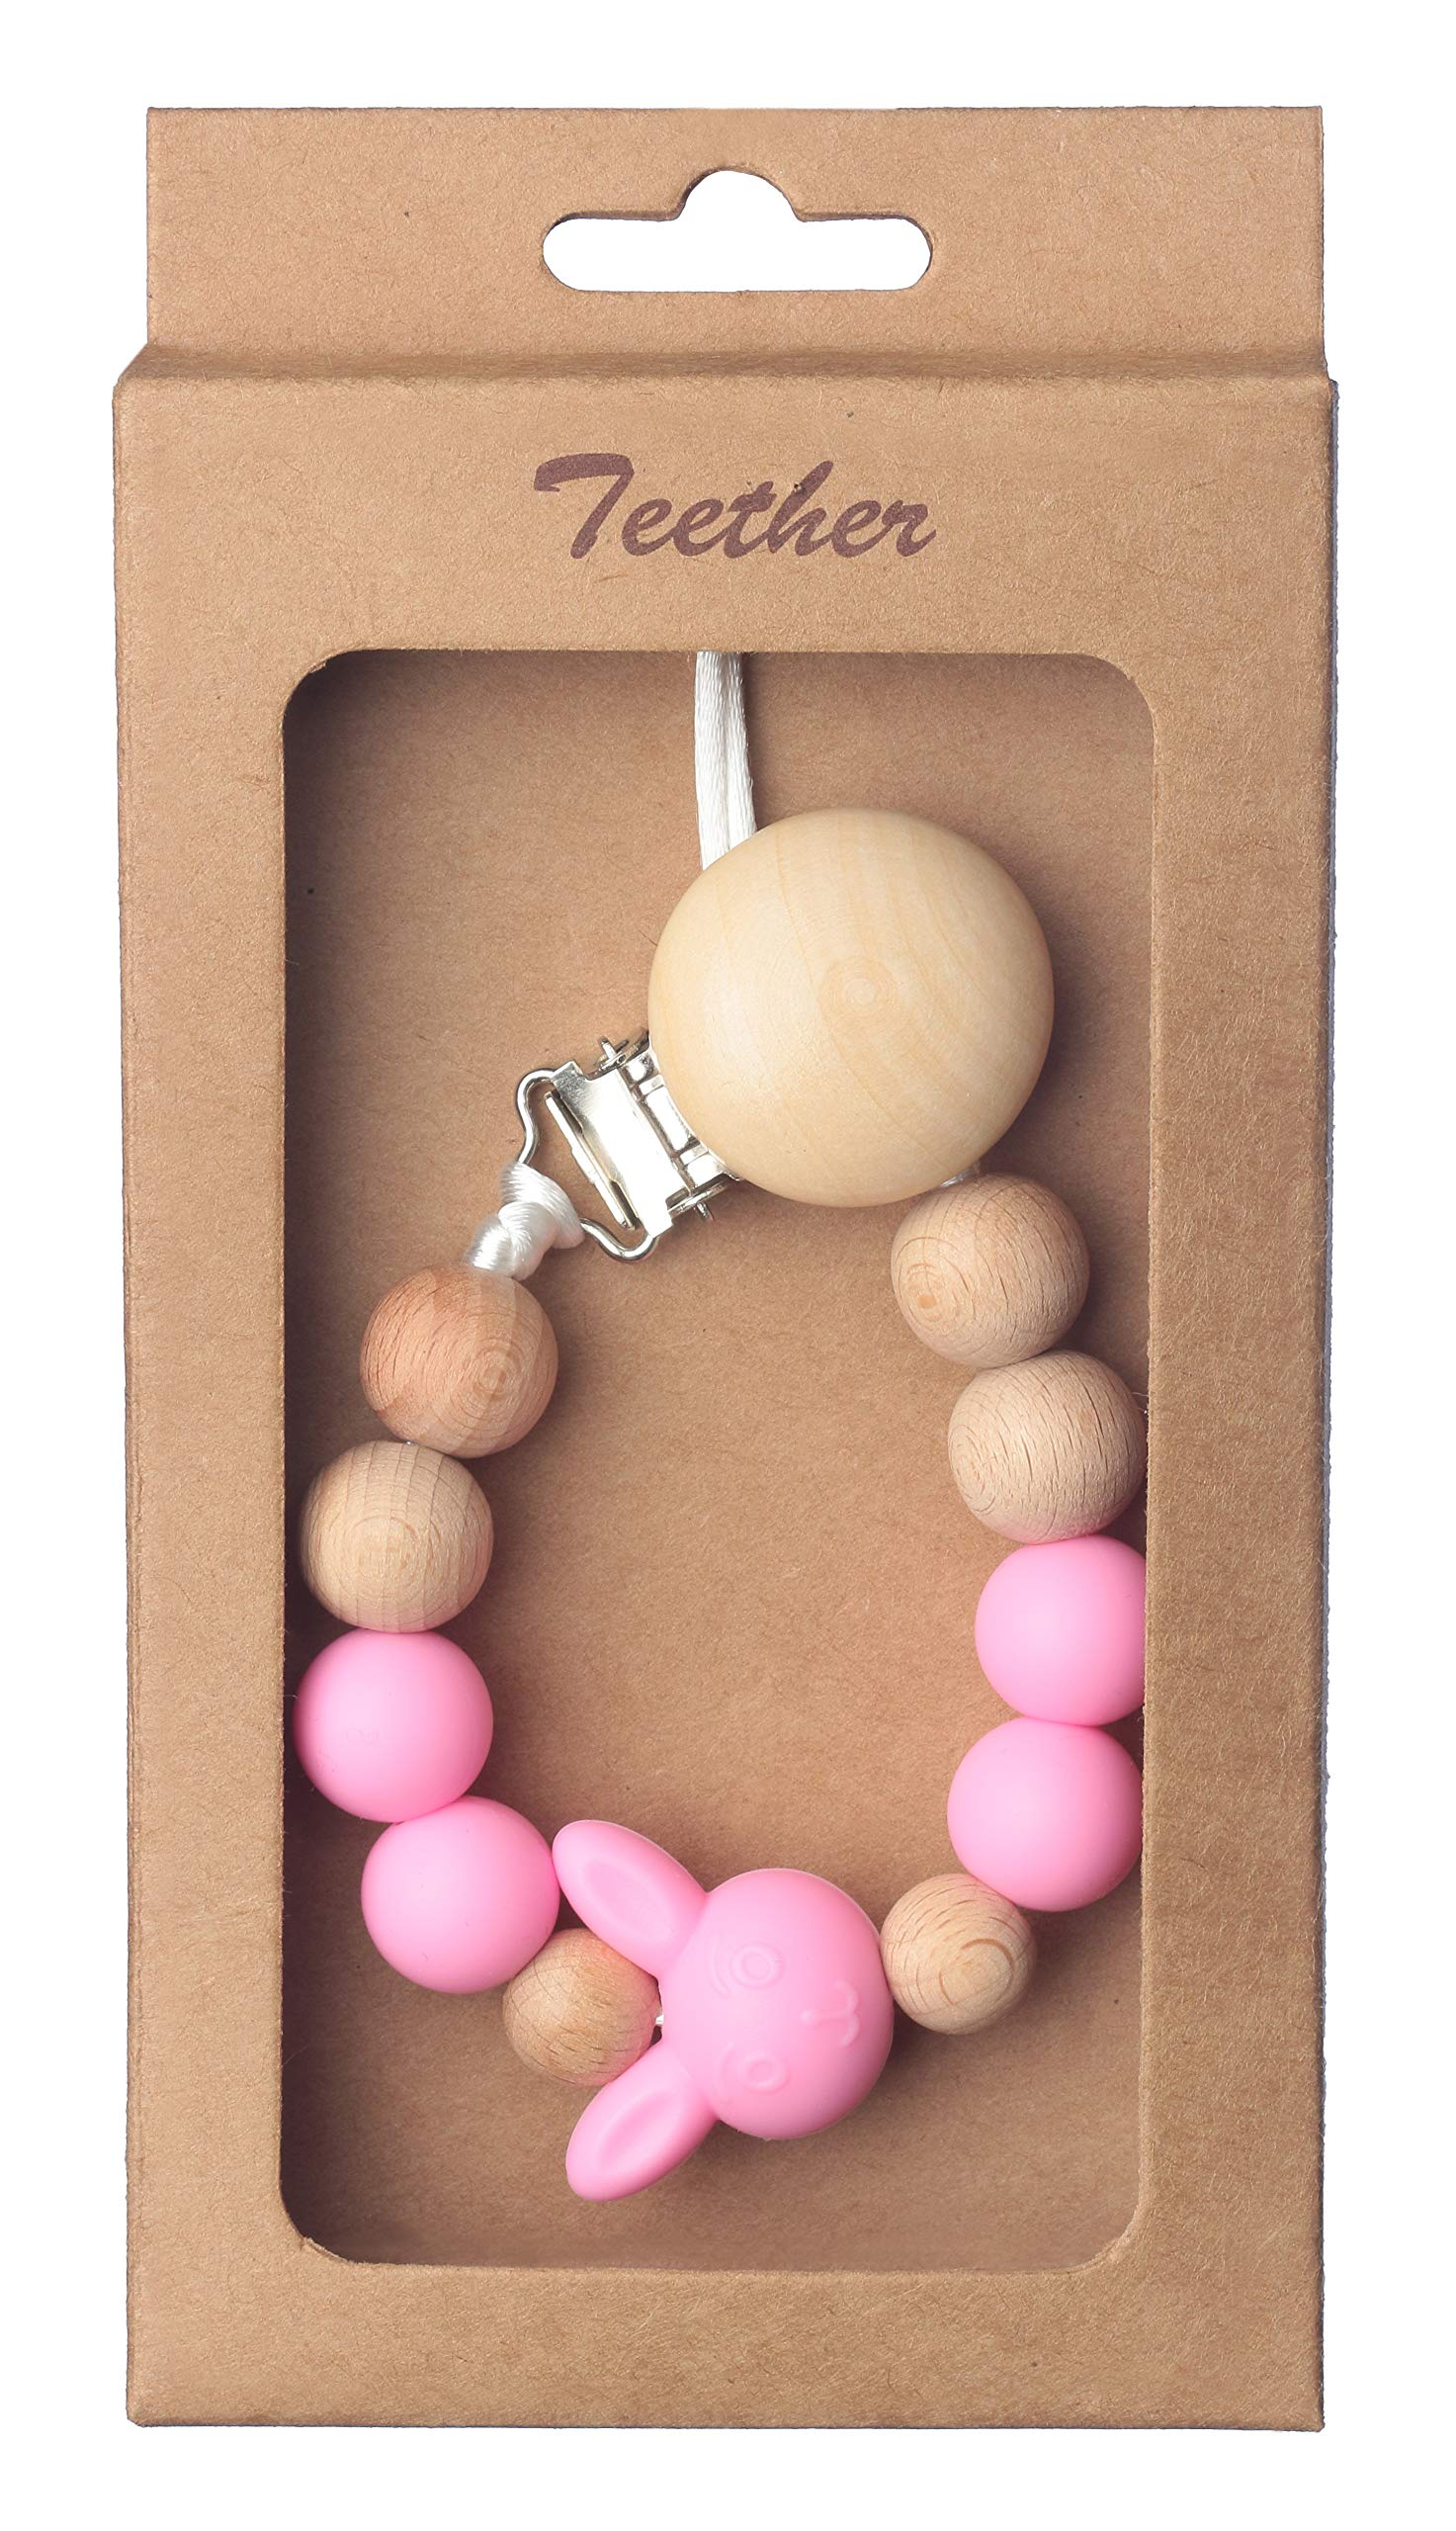 Beebeez Pacifier Clip for Baby Teething Silicone, Wood Beads with Silicone Bunny 2-in-1 Holder for Newborn - Infant Baby Shower Gift - Best for Teether Toys HOT Pink by Beebeez